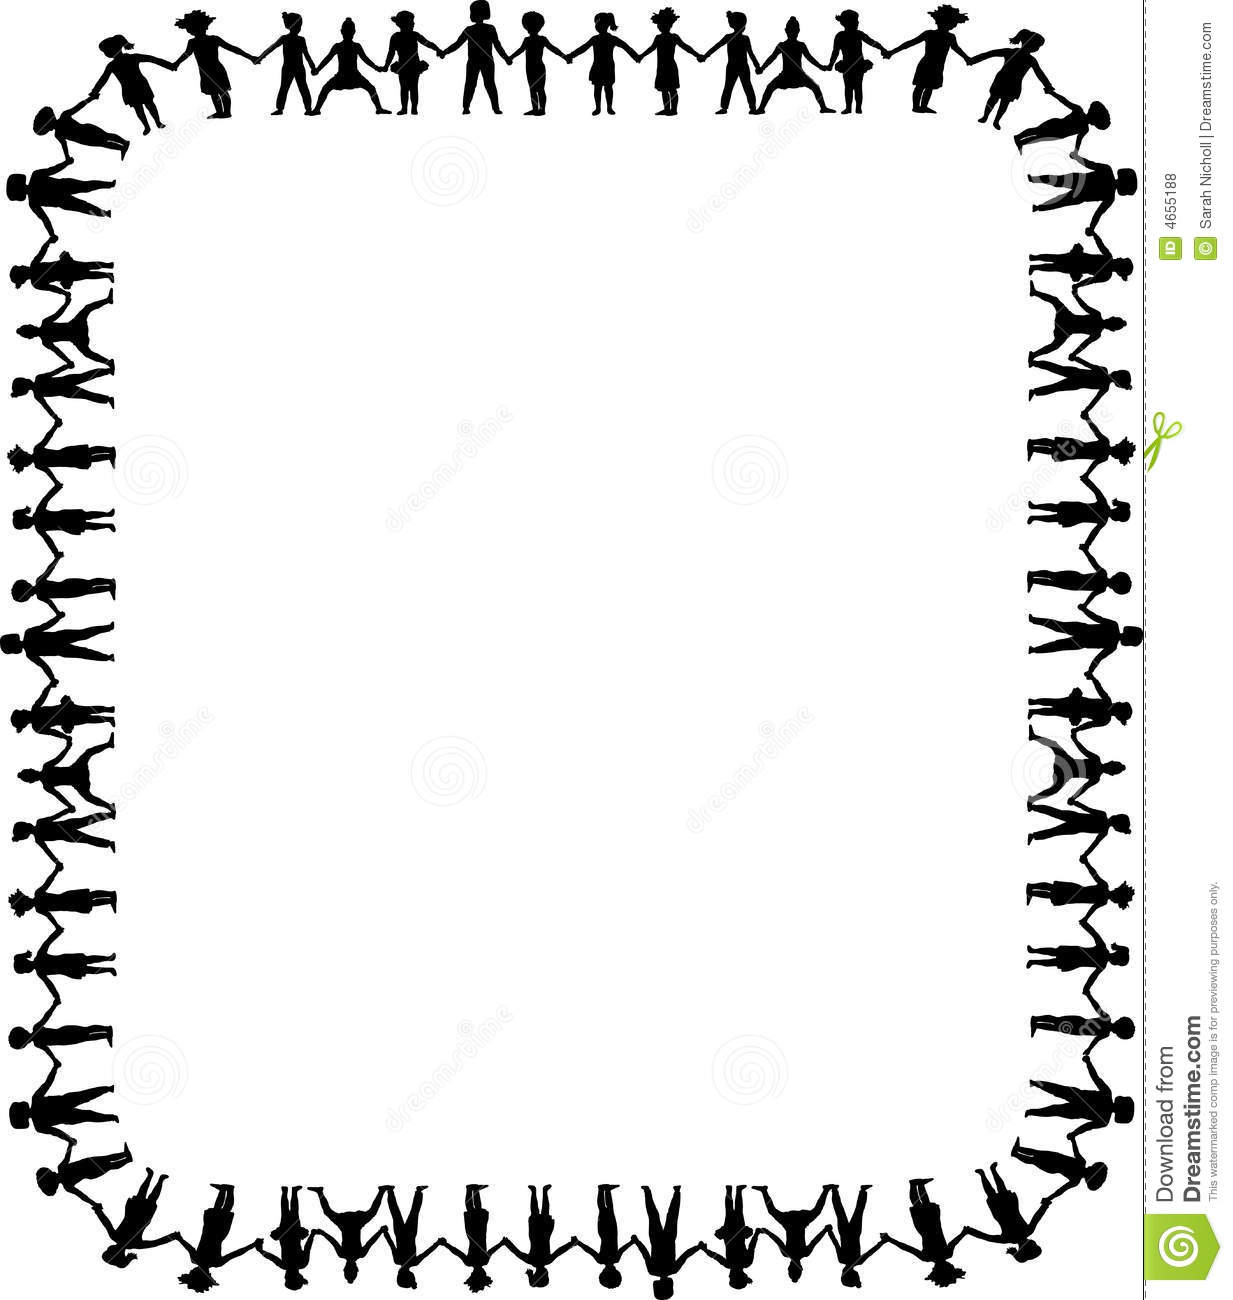 Holding Hands Border 1 Royalty Free Stock Photos